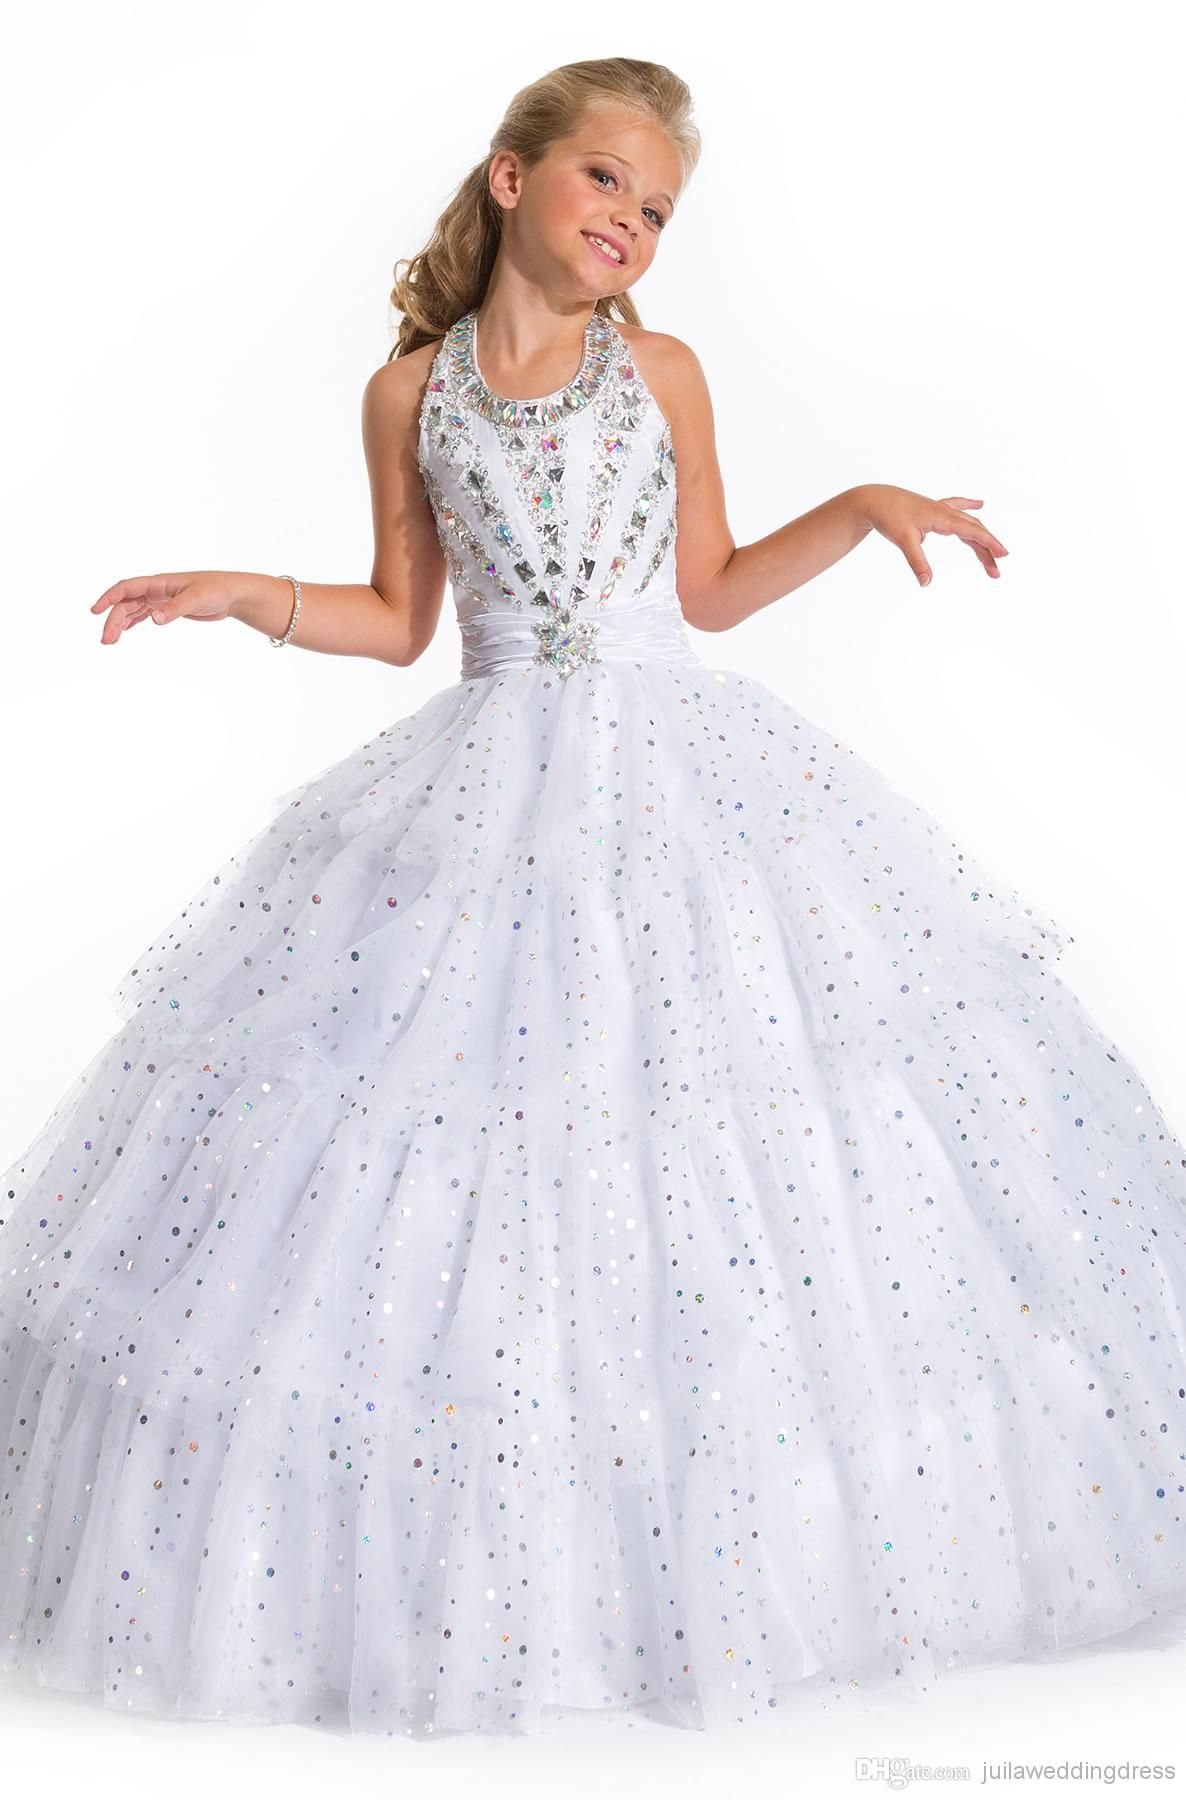 Wholesale Girls Pageant Dress Buy New Arrival White Formal Girls